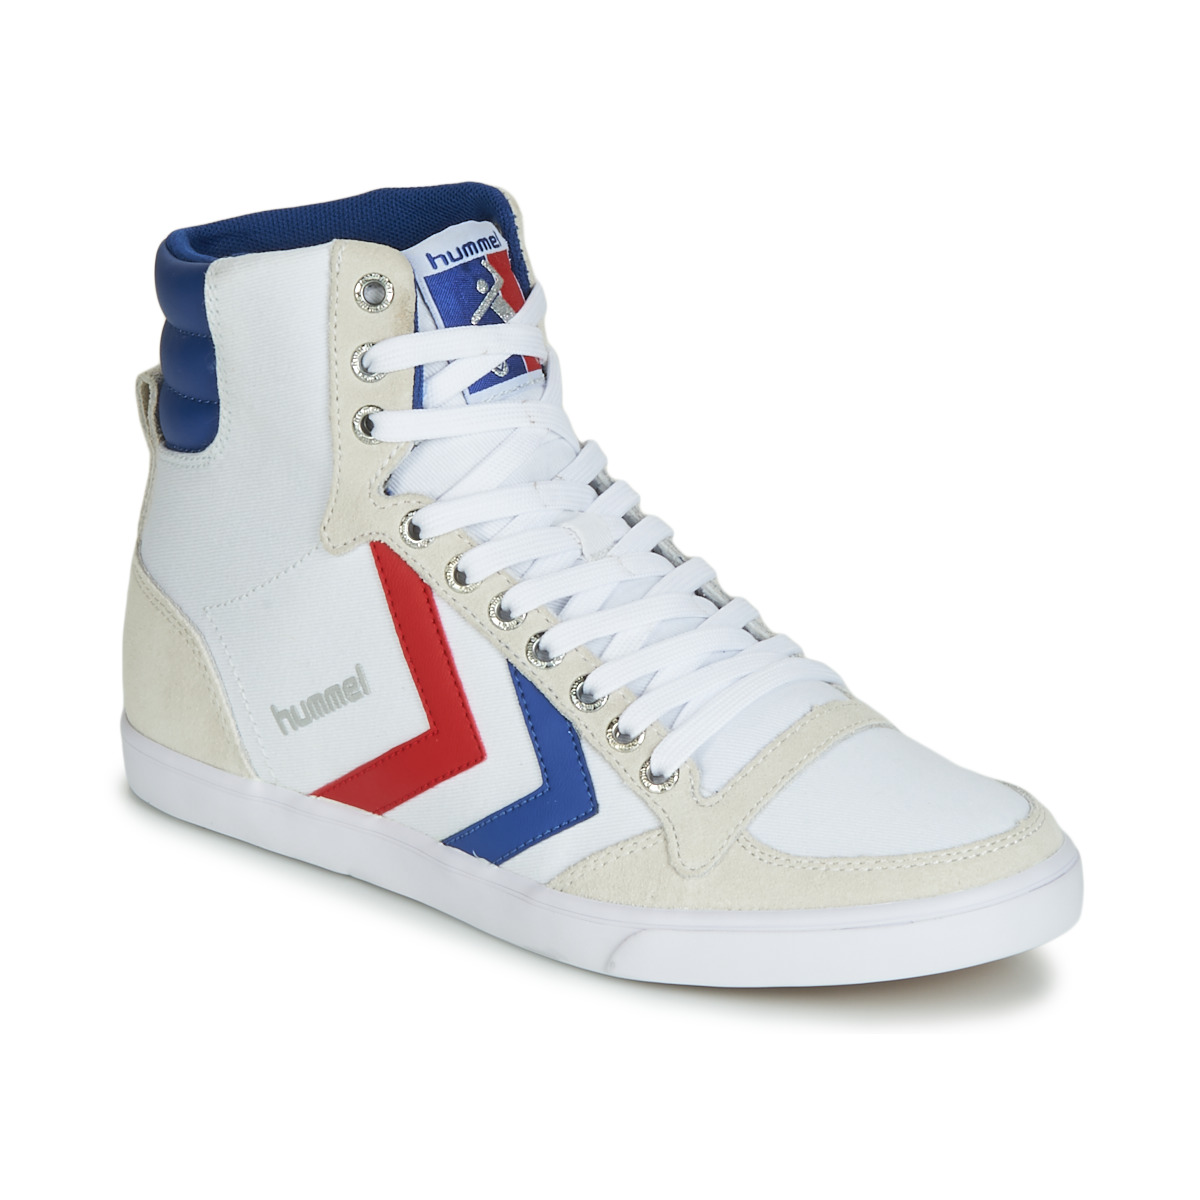 Hummel SLIMMER STADIL HIGH White / Blue / Ribbon Red